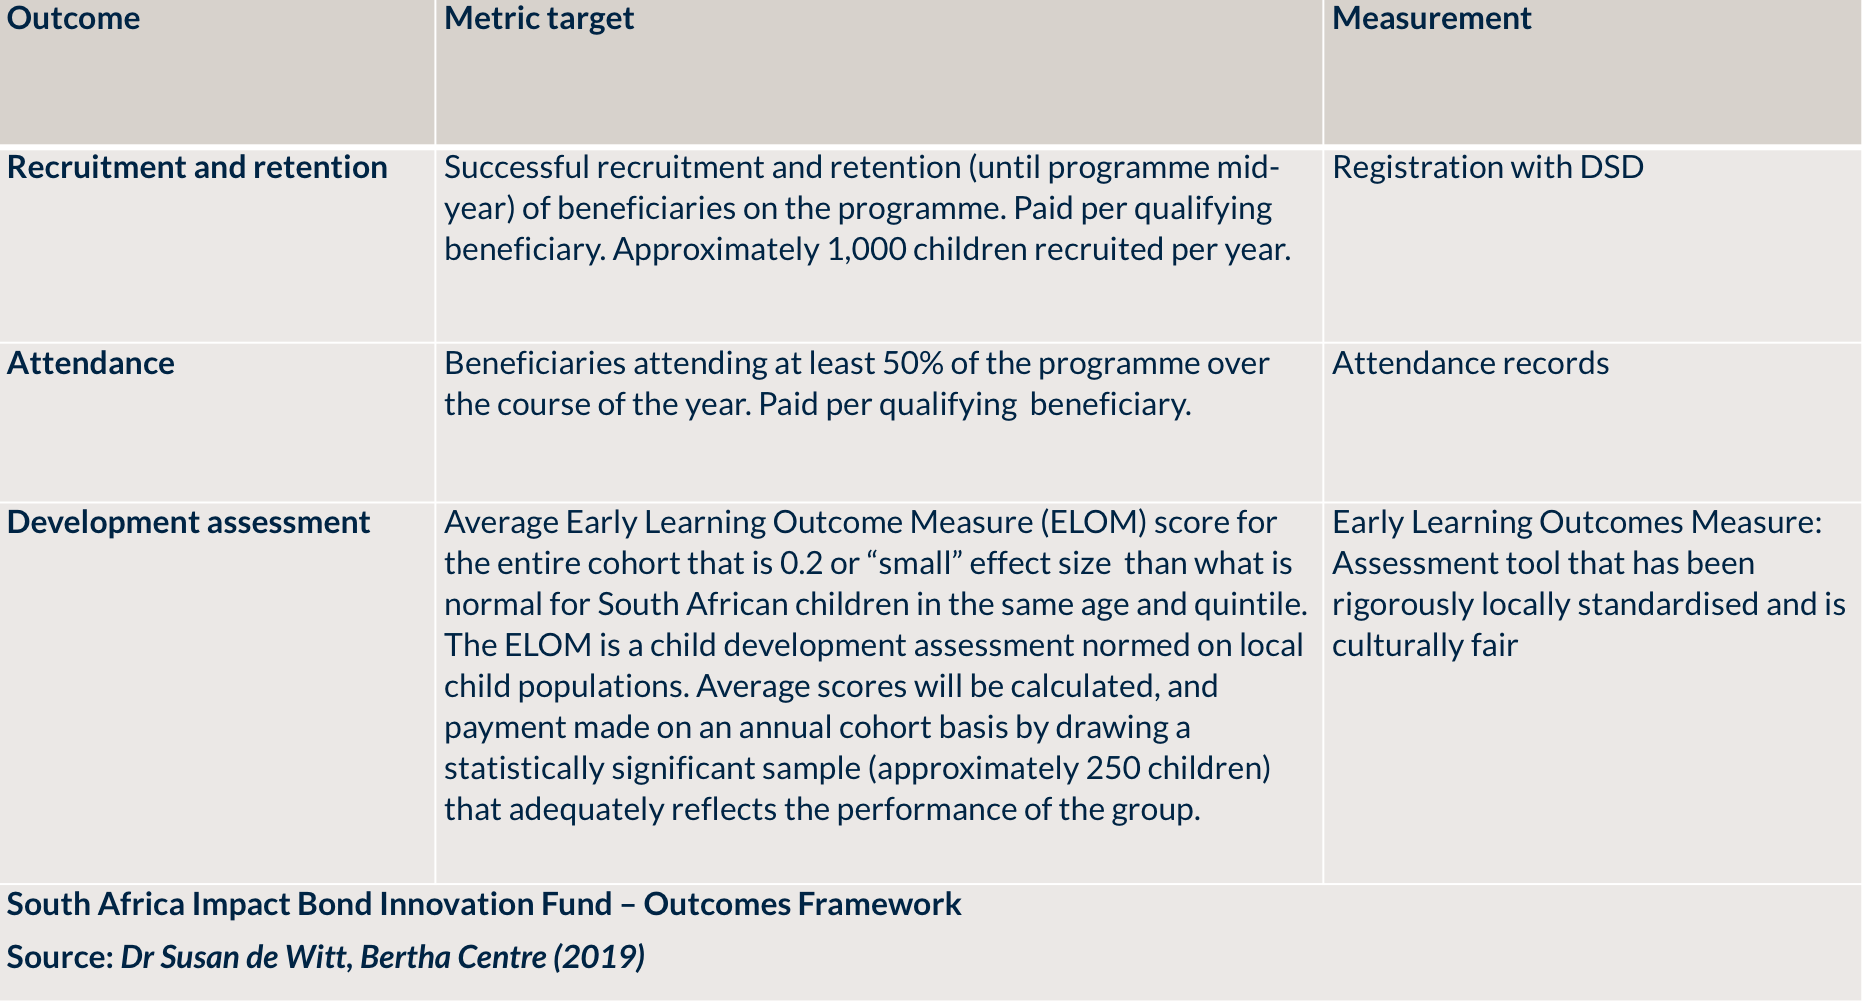 SouthAfricaImpactBondInnovationFund_Outcomes.png